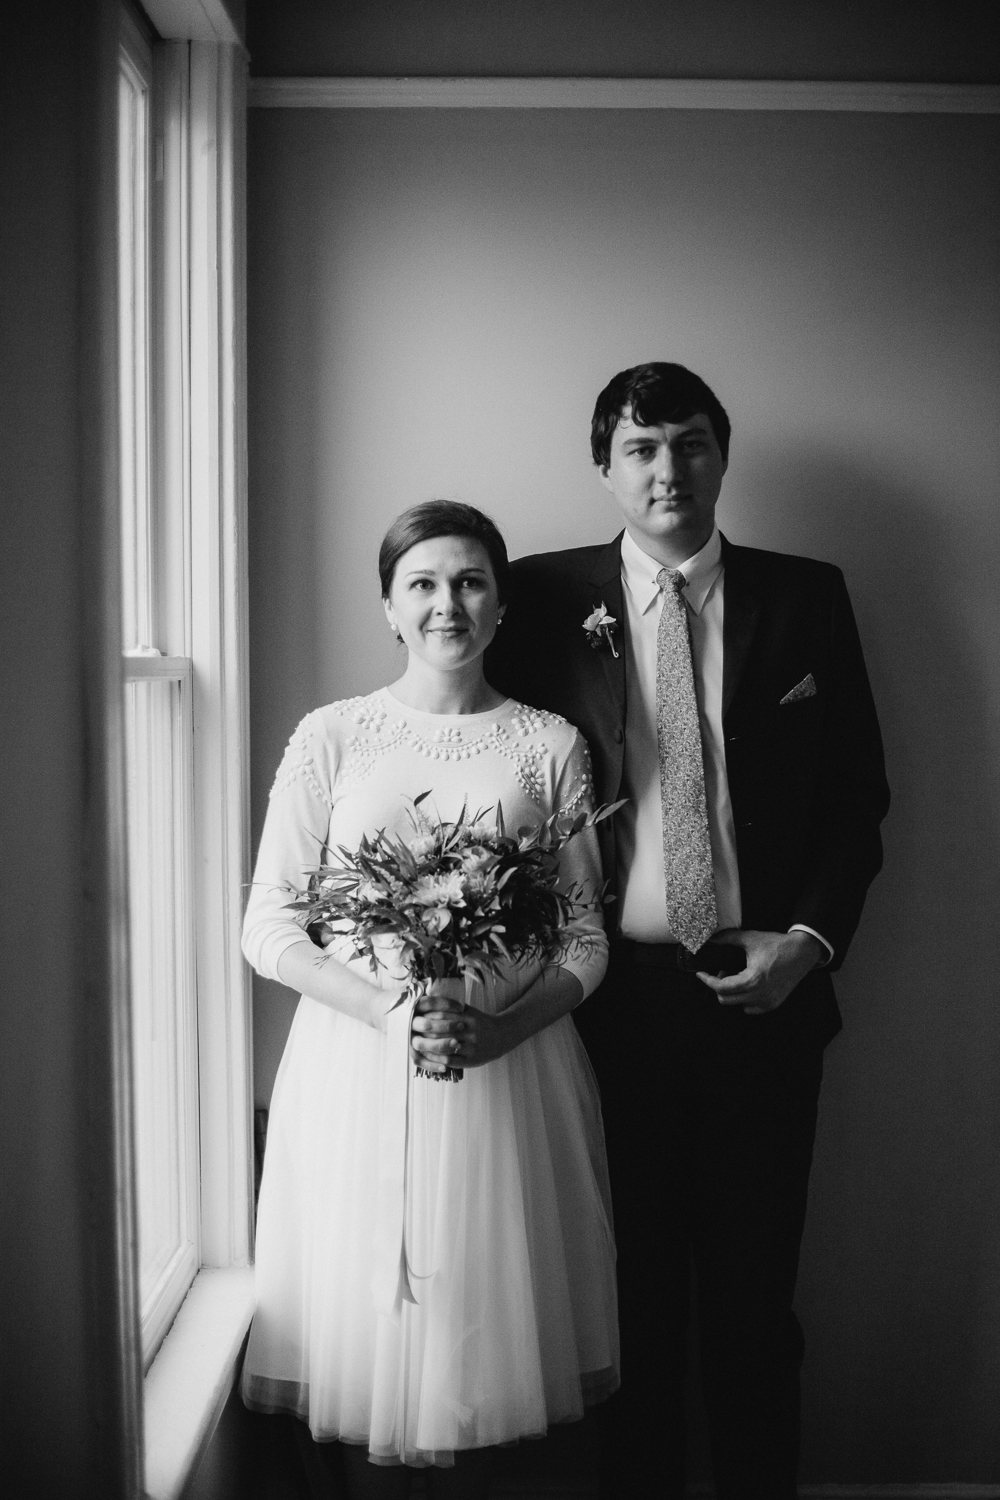 SarahMattozziPhotography-IntimateWedding-RichmondVA-87.jpg